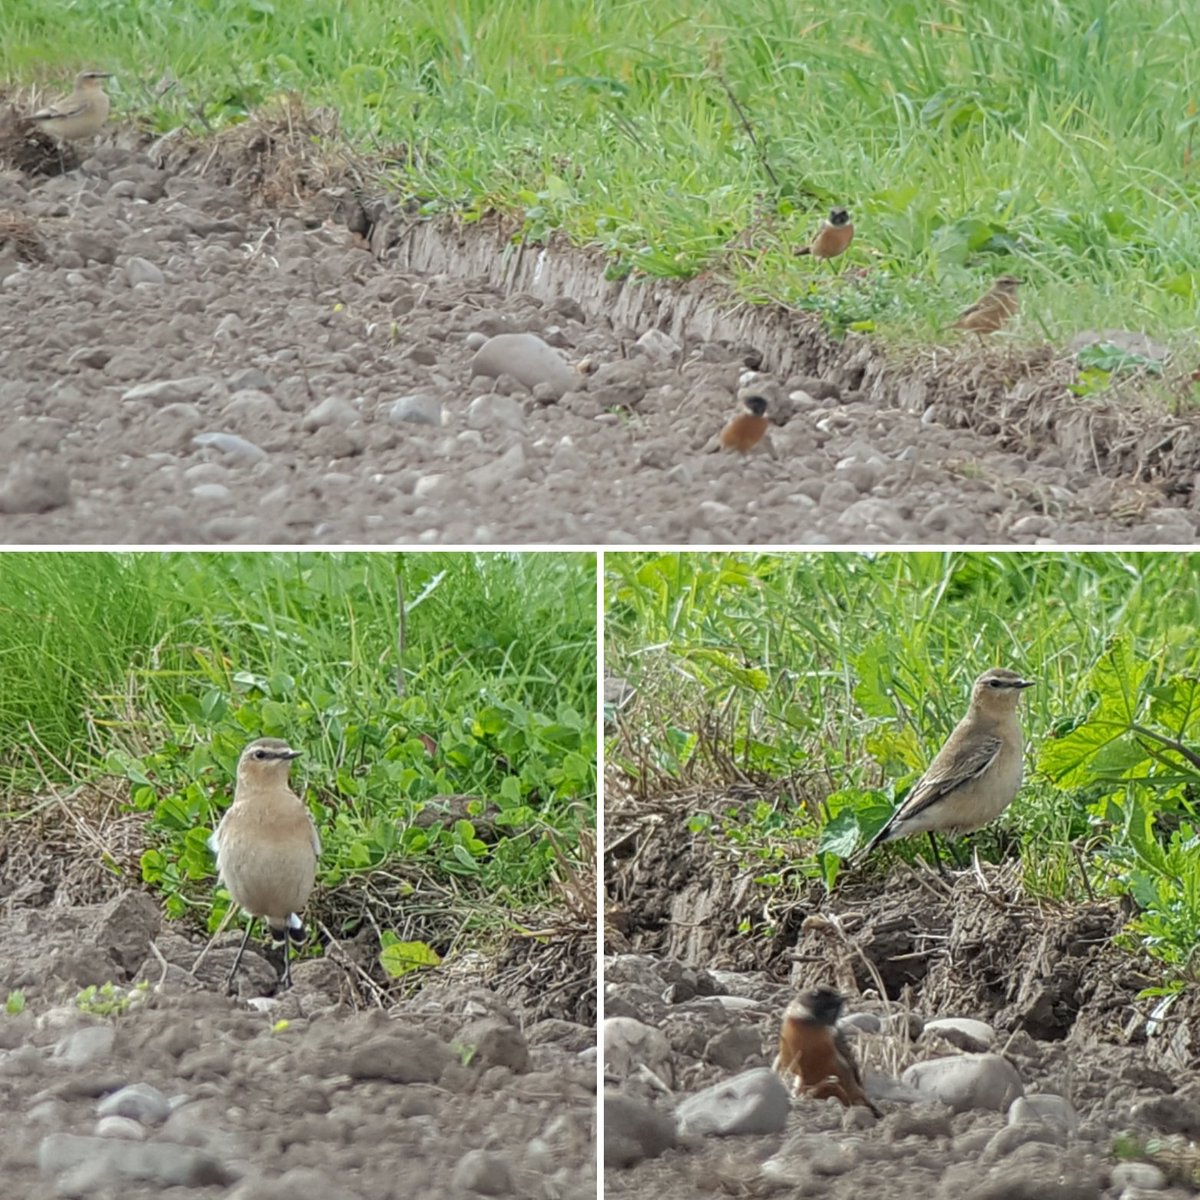 Another great day at Smestow with Wheatear, Winchat & 5 stonechats (3m) at Ebstree farm. (f) stonechat at Trescott. 2 yellow & another (m) stonechat near sewage wks, 65 stockdoves 4 buzz kestrel & sparr @Staffsbirdnews @TheMoorehen @BirderGaz @gwrsv https://t.co/5x4JGaMZ6V